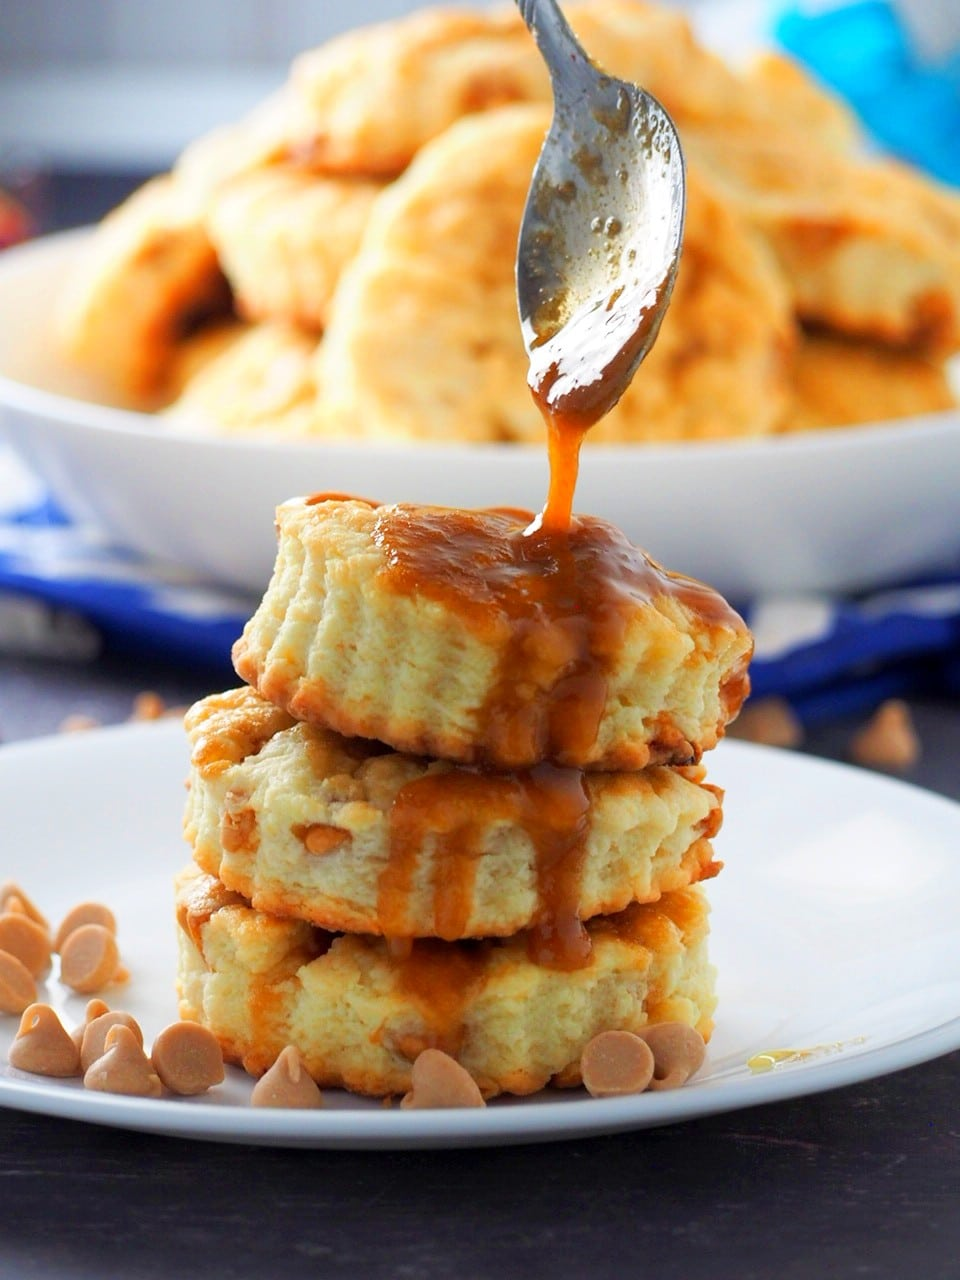 Drizzling caramel sauce on top of the stacked salted caramel scones.